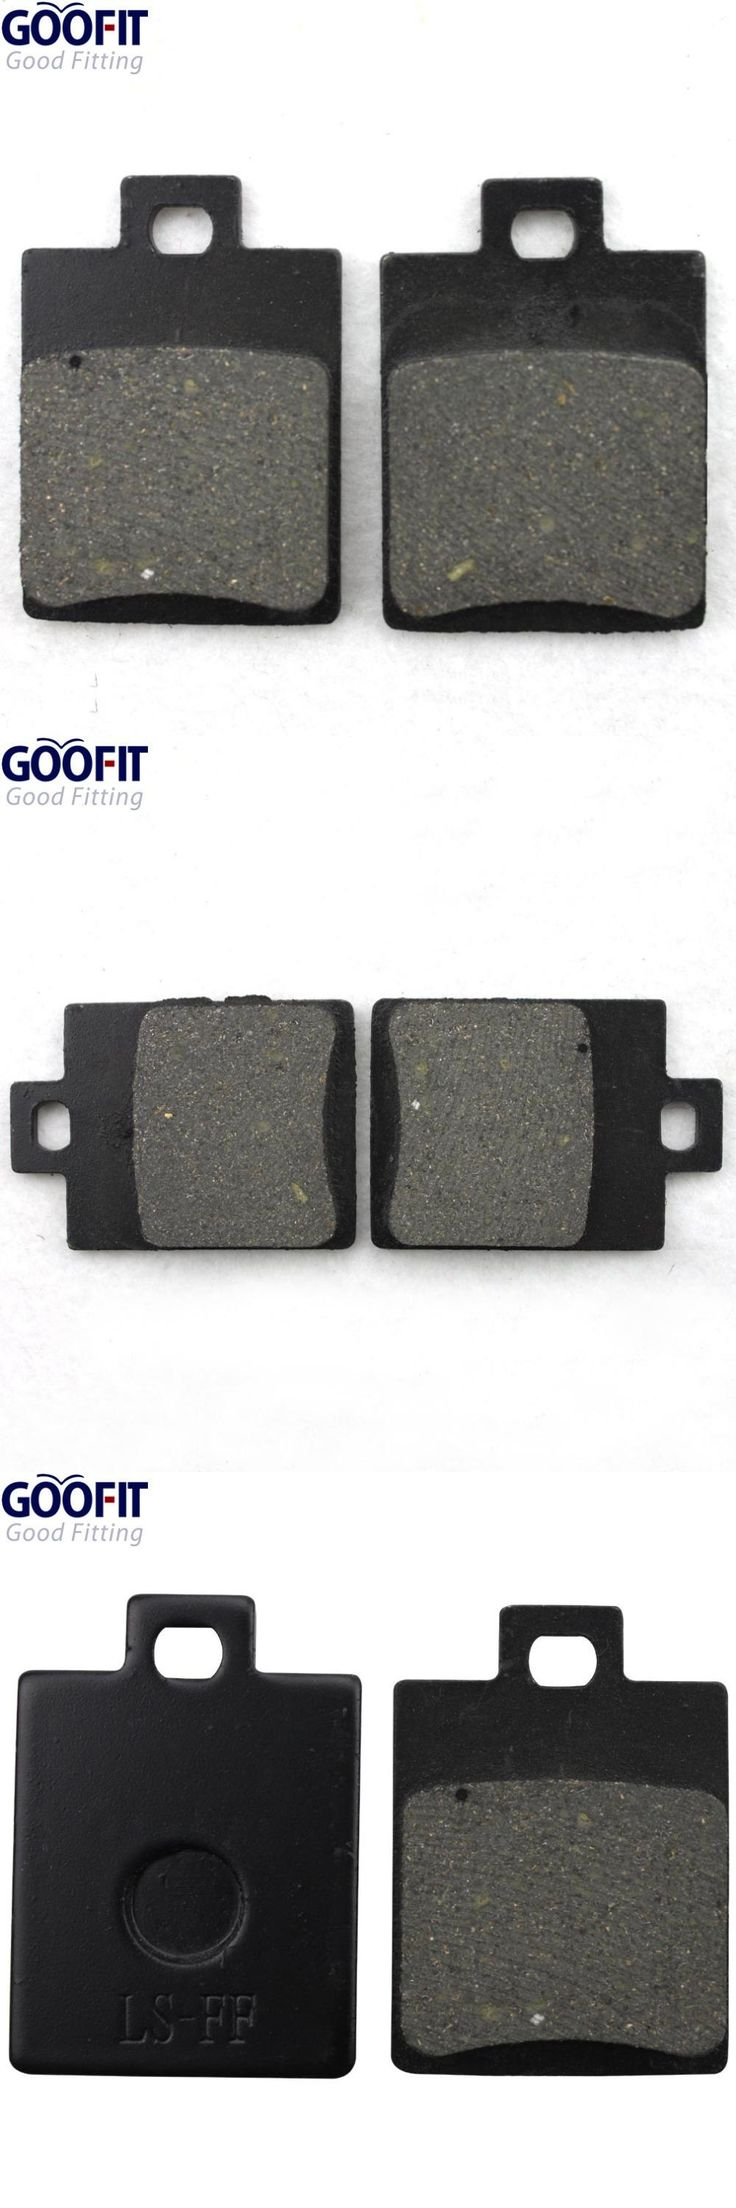 [Visit to Buy] GOOFIT ATV Rear Disc Brake Pad Pads 50cc 70cc 90cc 110cc 125cc Dirt Bike Go Kart  C029-044 #Advertisement